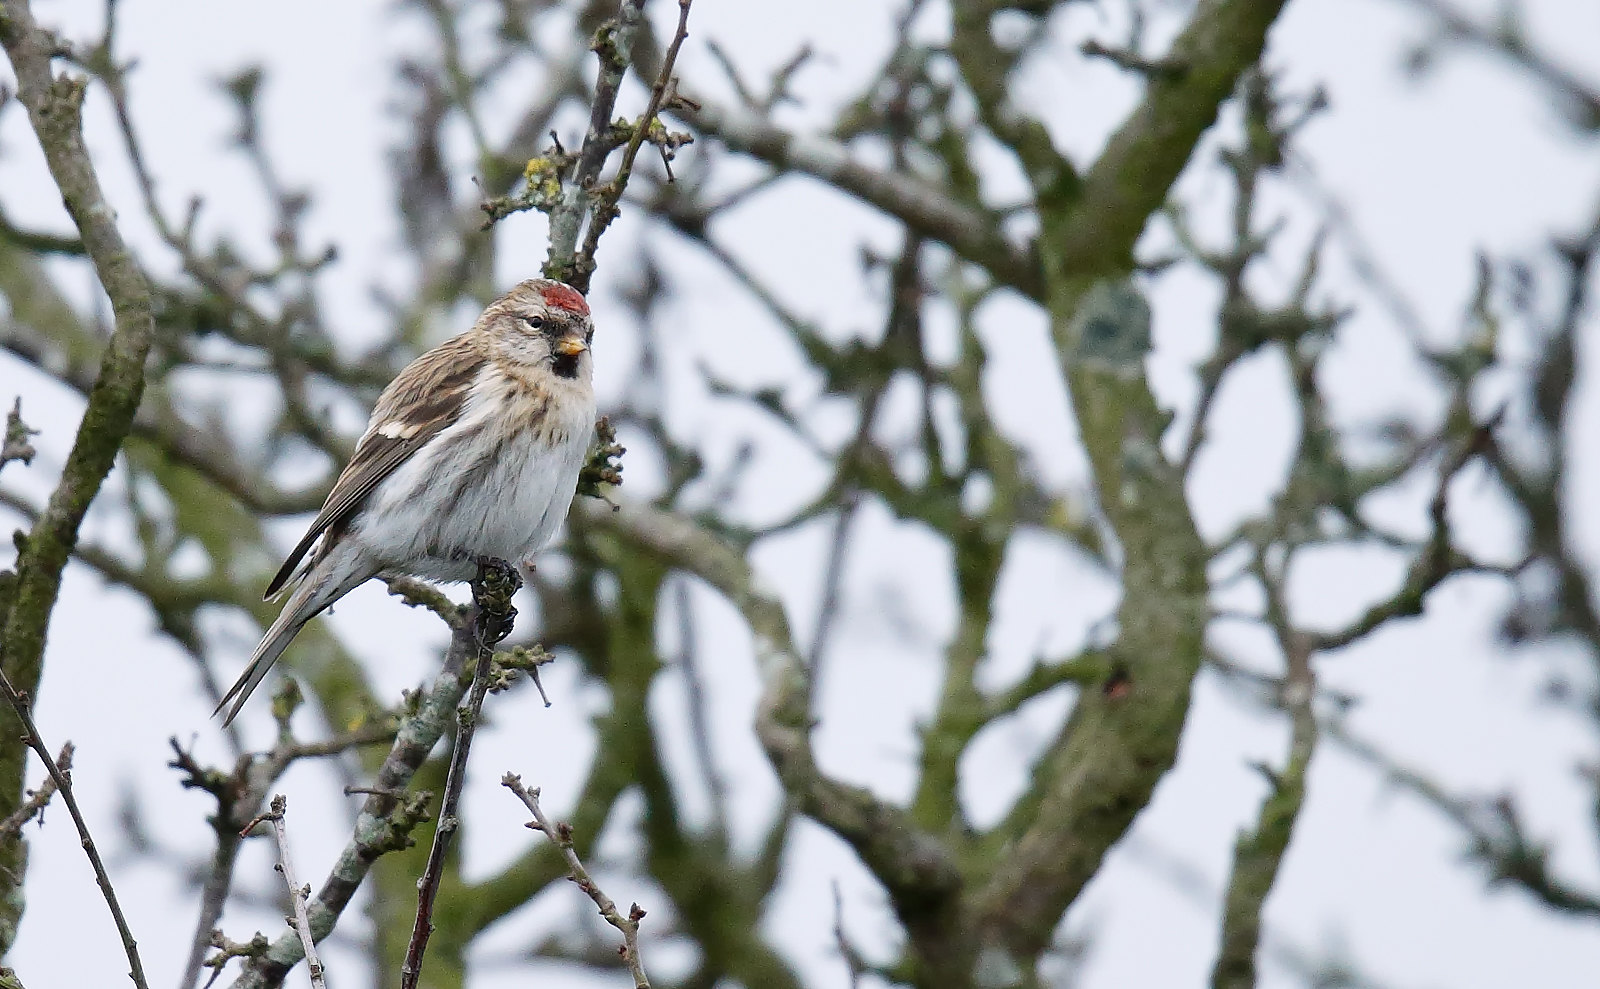 Common Redpoll (Mealy Redpoll)